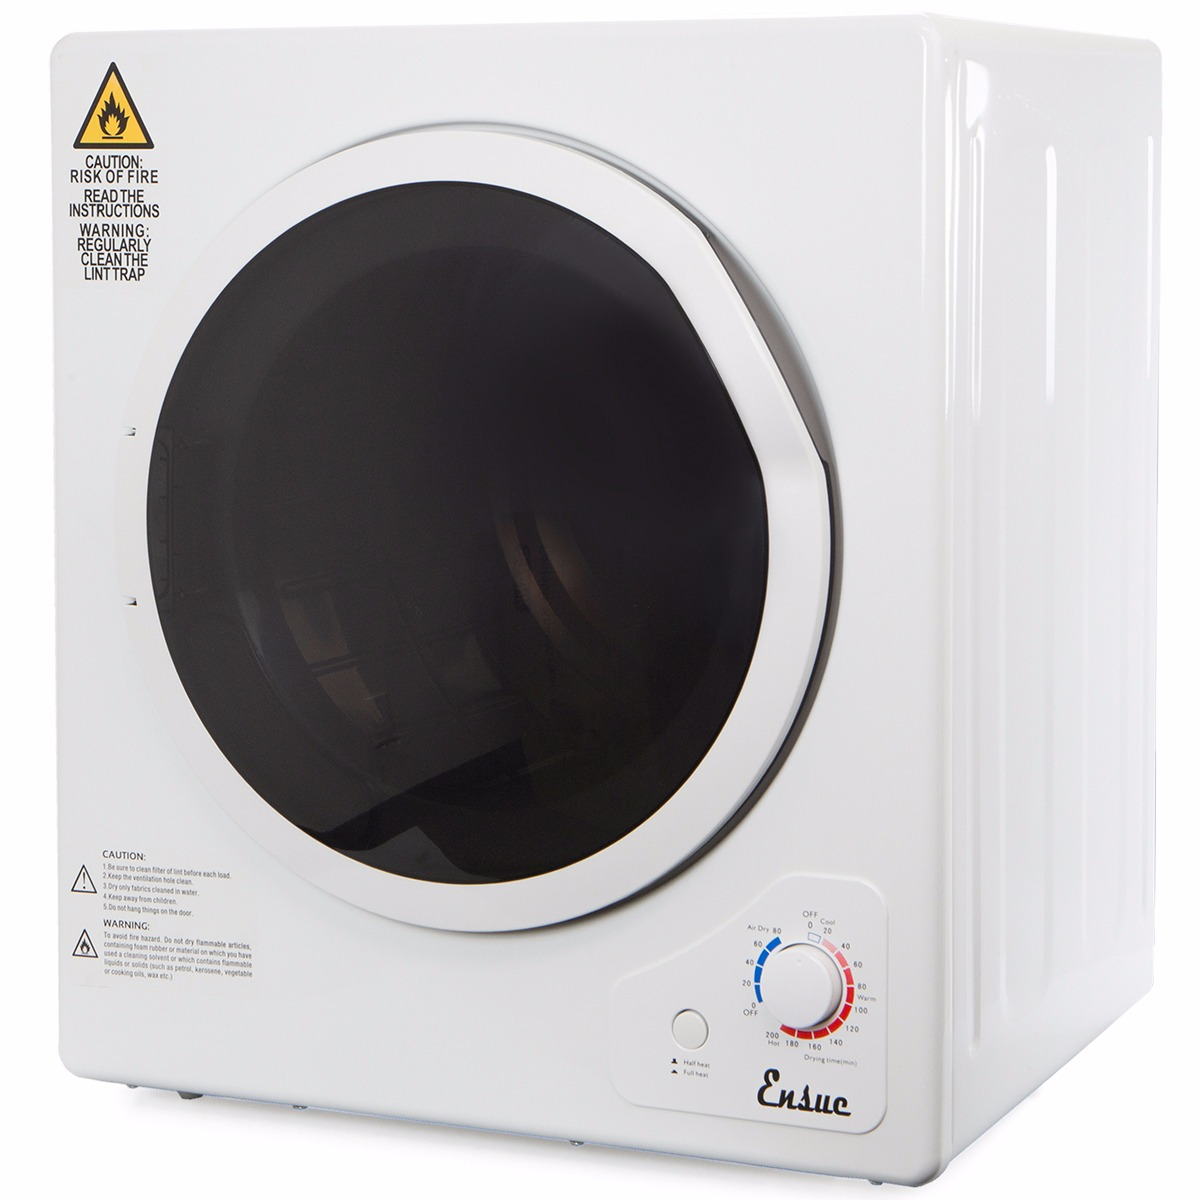 Deals on electric dryers